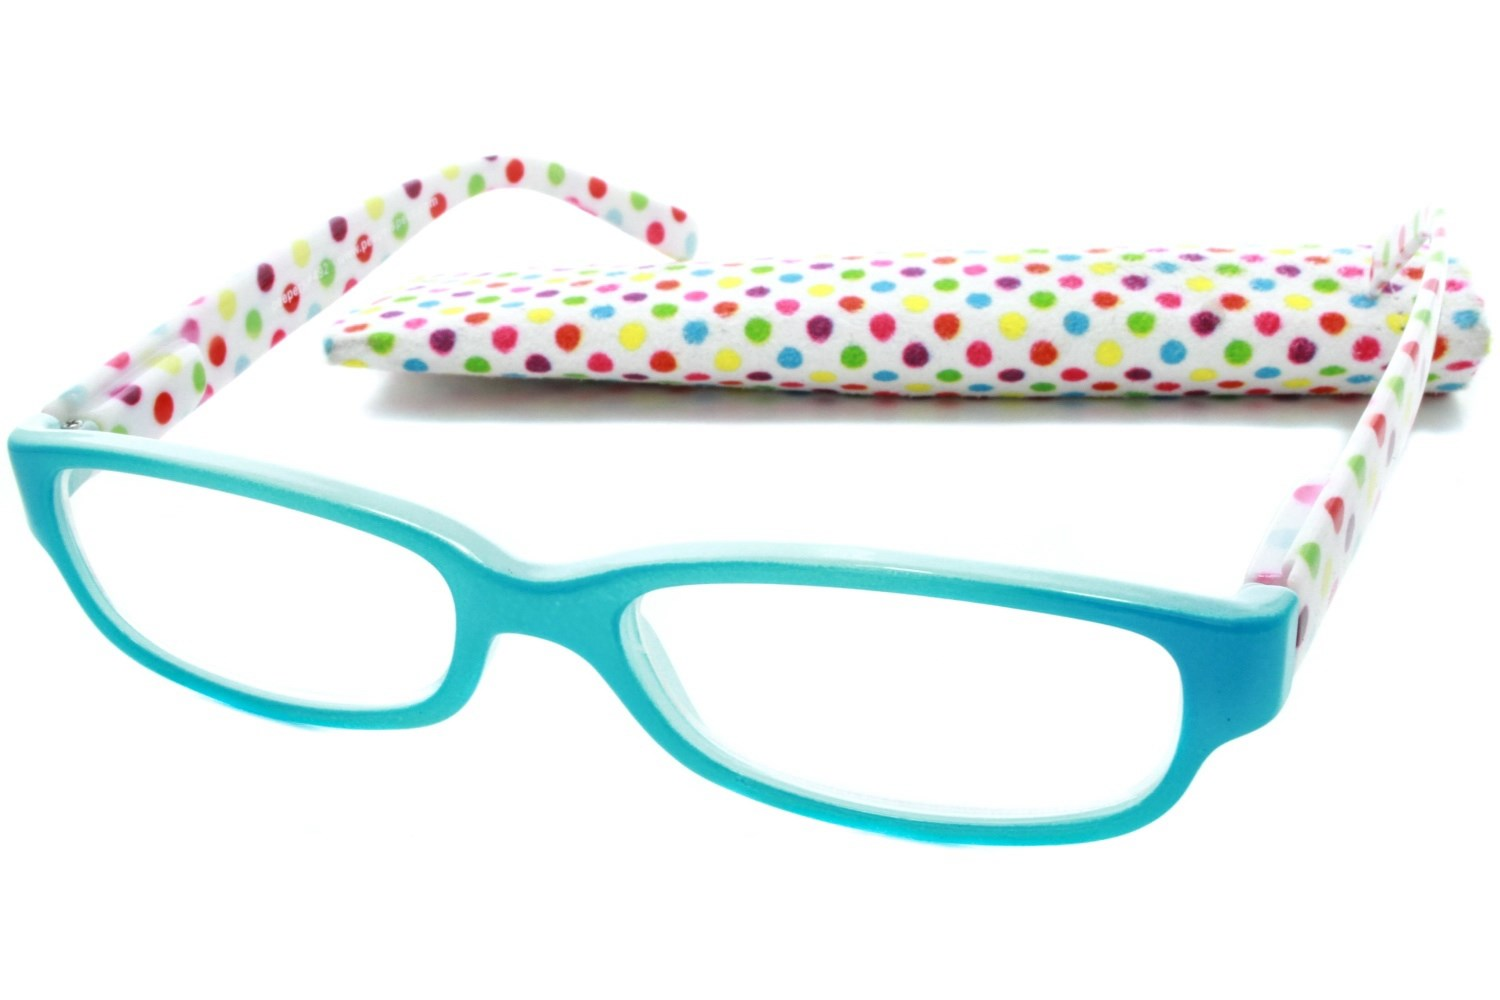 acc3921e8921 Peepers Candy Shop Reading Glasses - GascanPolarizedSunglasses